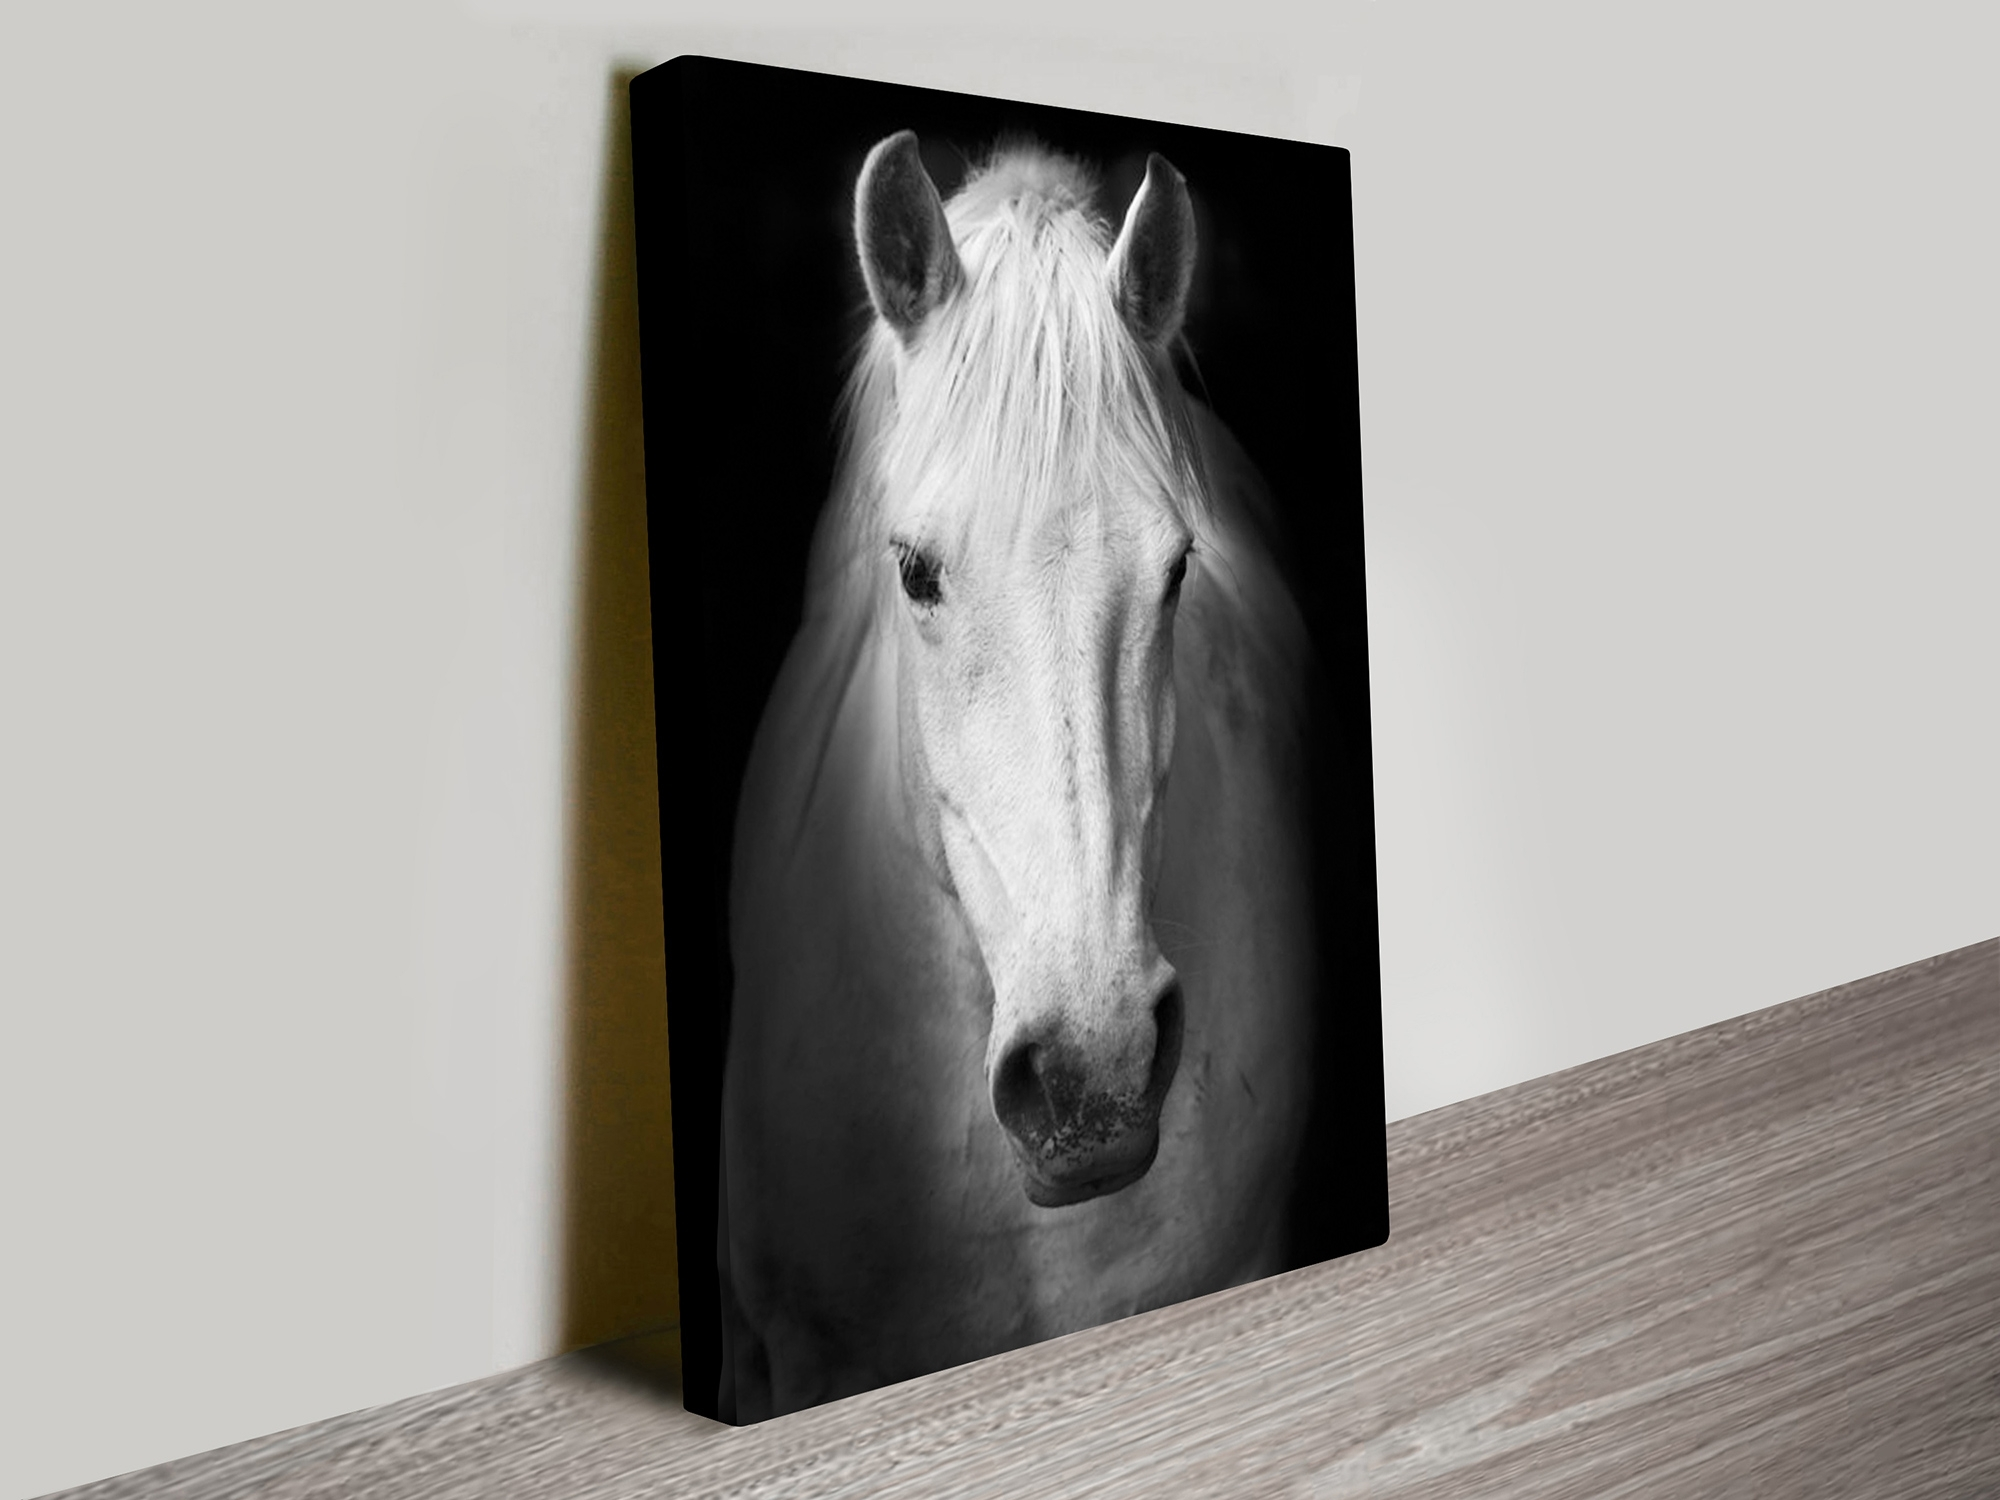 Most Recently Released Horses Canvas Wall Art Inside Black And White Photo Canvas Prints And Cheap Wall Art (View 9 of 15)